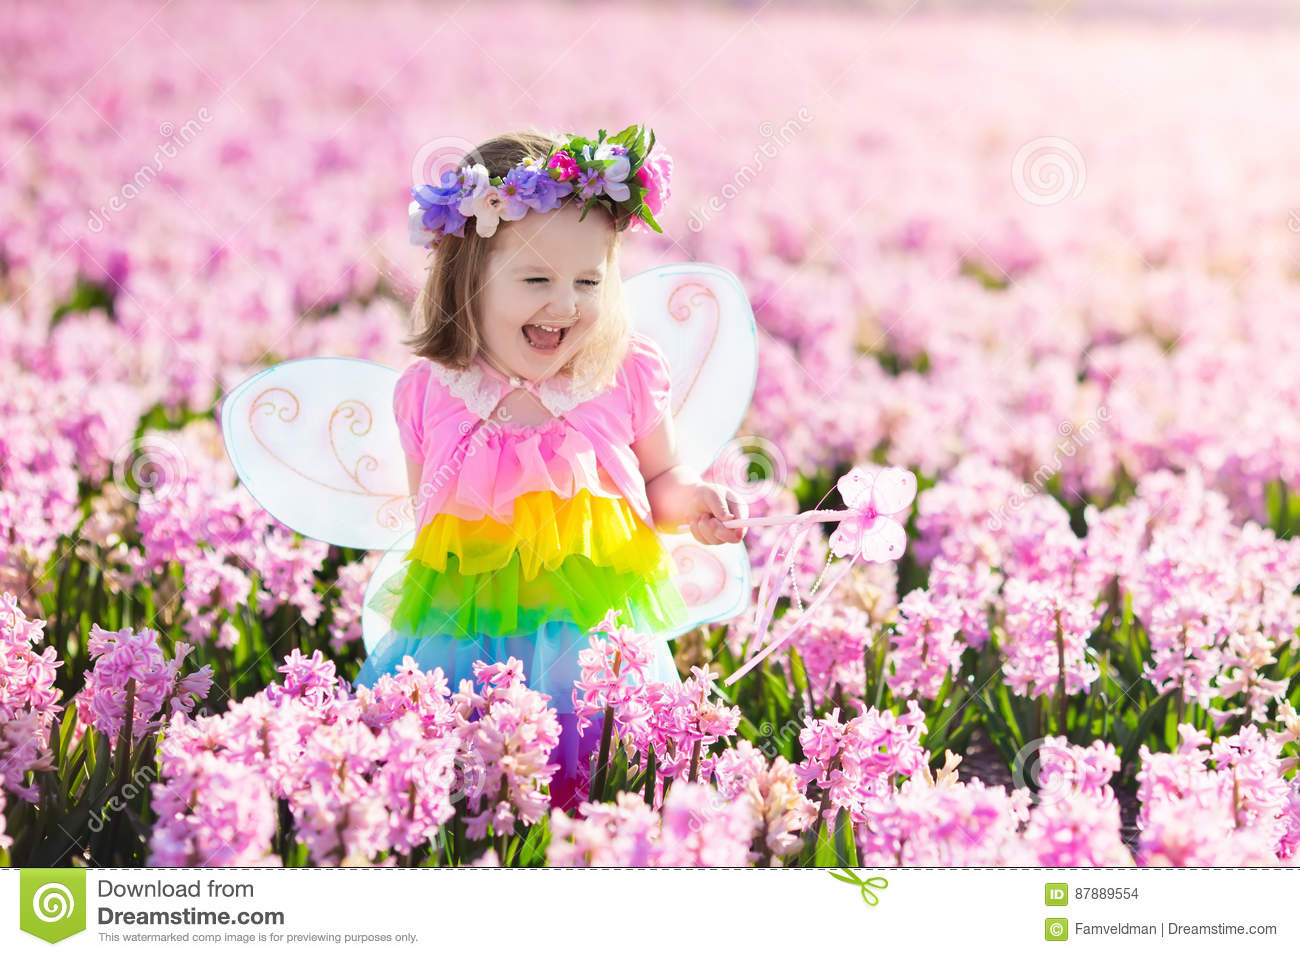 d3a8b3d4a346 Little Girl In Fairy Costume Playing In Flower Field Stock Photo ...